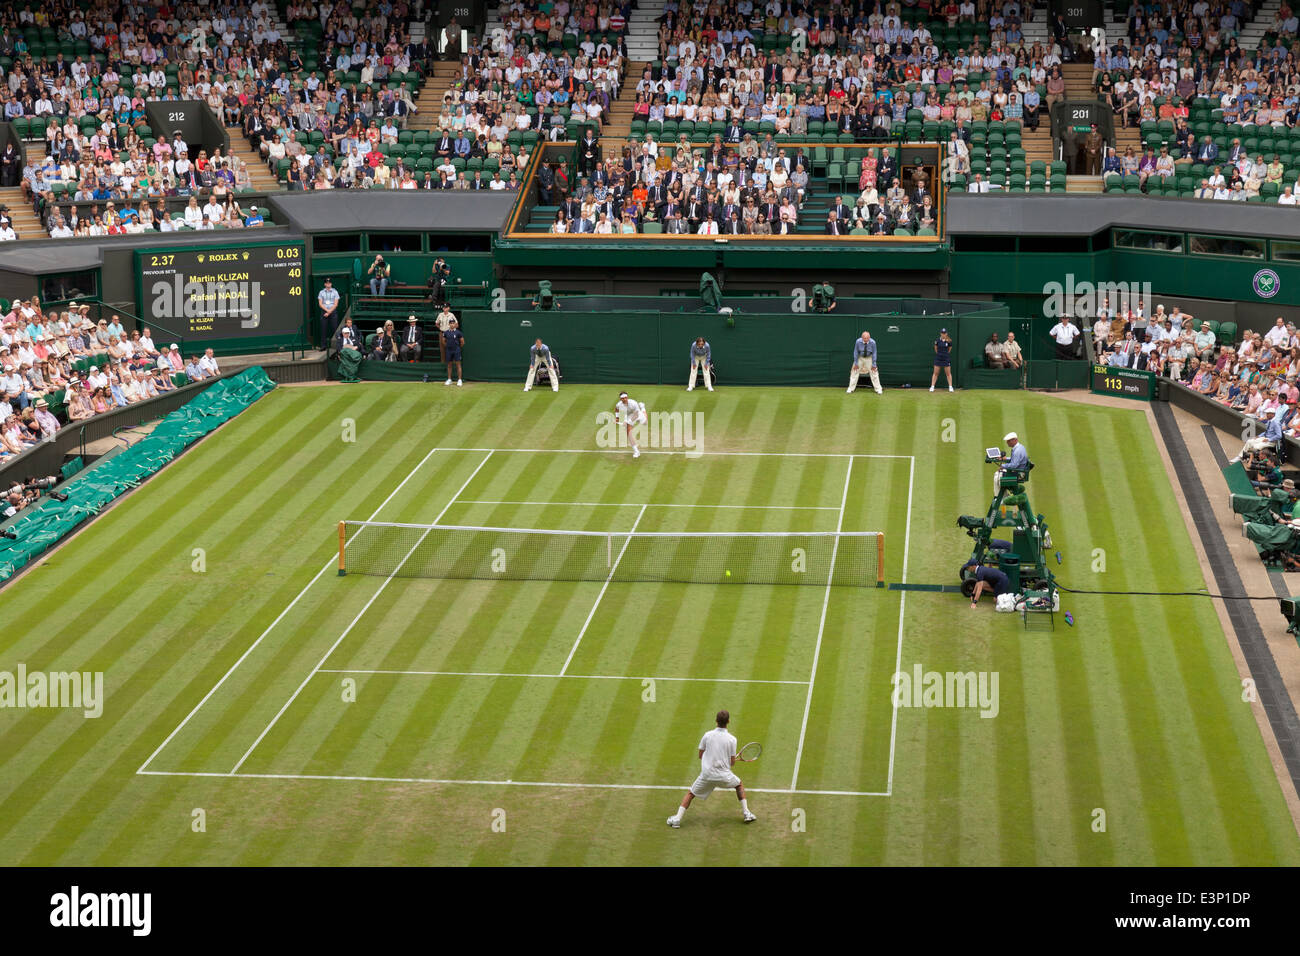 Wimbledon Centre Court Mens des célibataires, 1er tour, 2014, Wimbledon Lawn Tennis Club, London England UK Banque D'Images